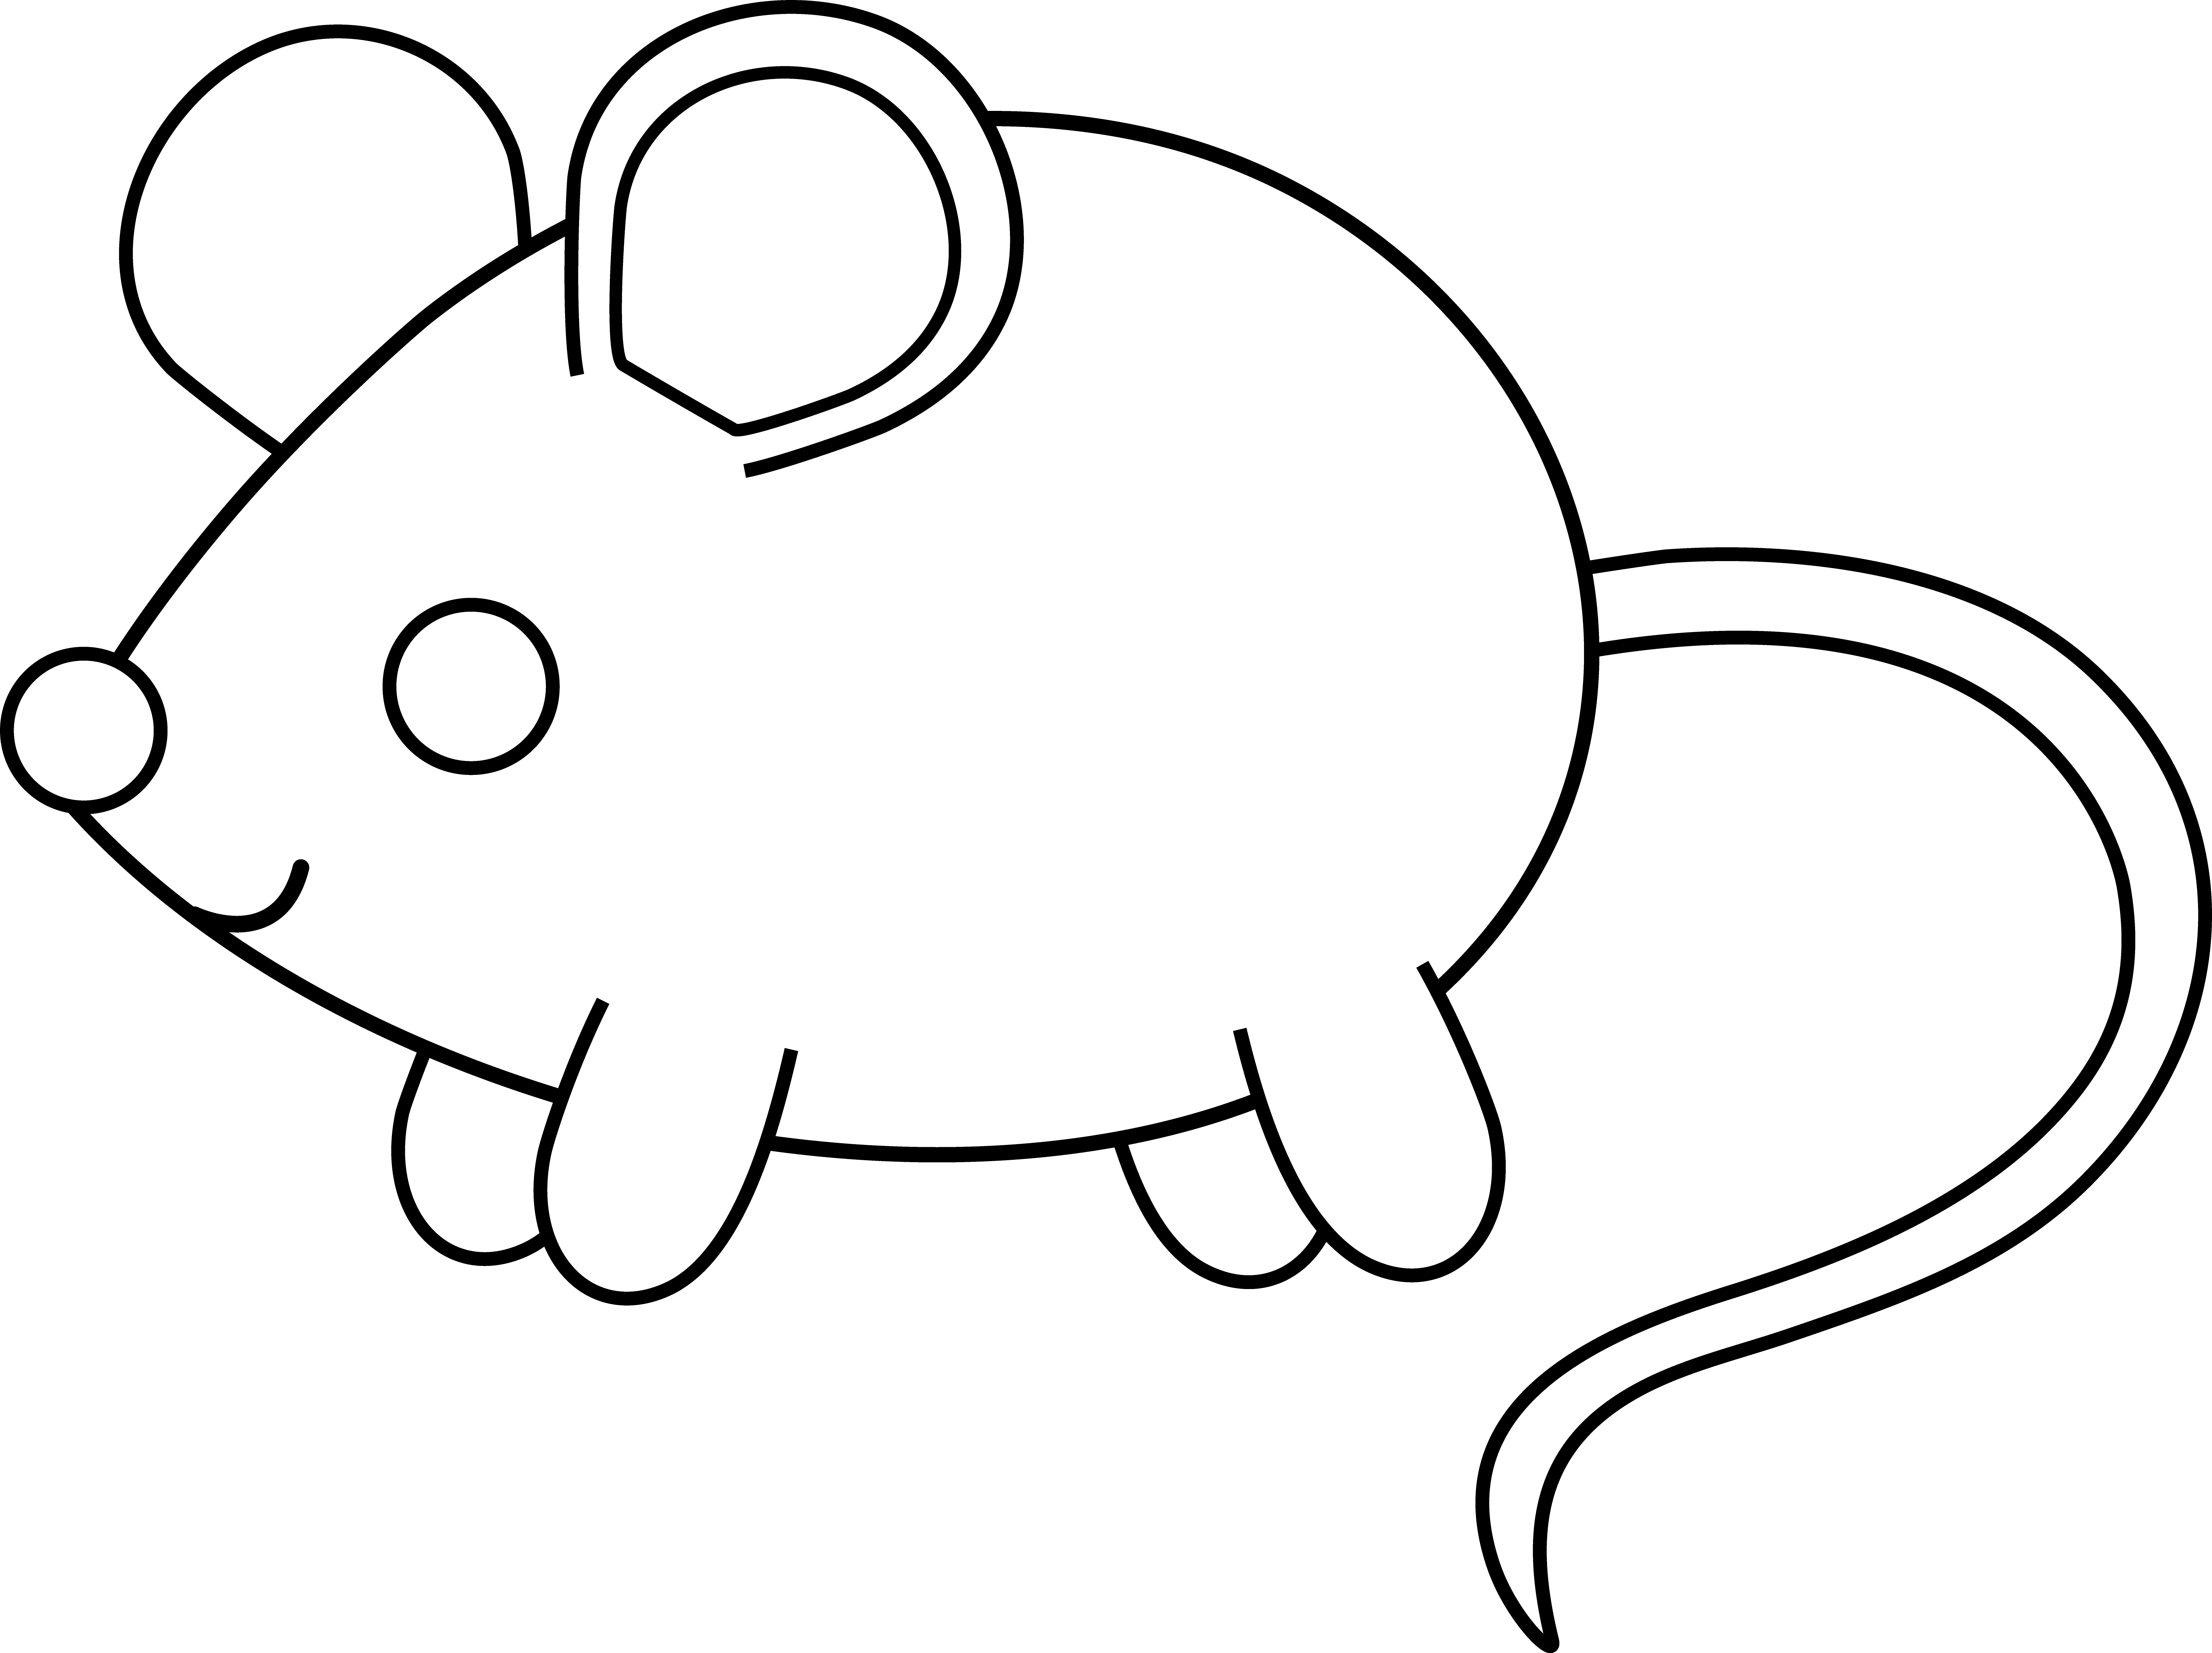 Computer mouse black and white clipart